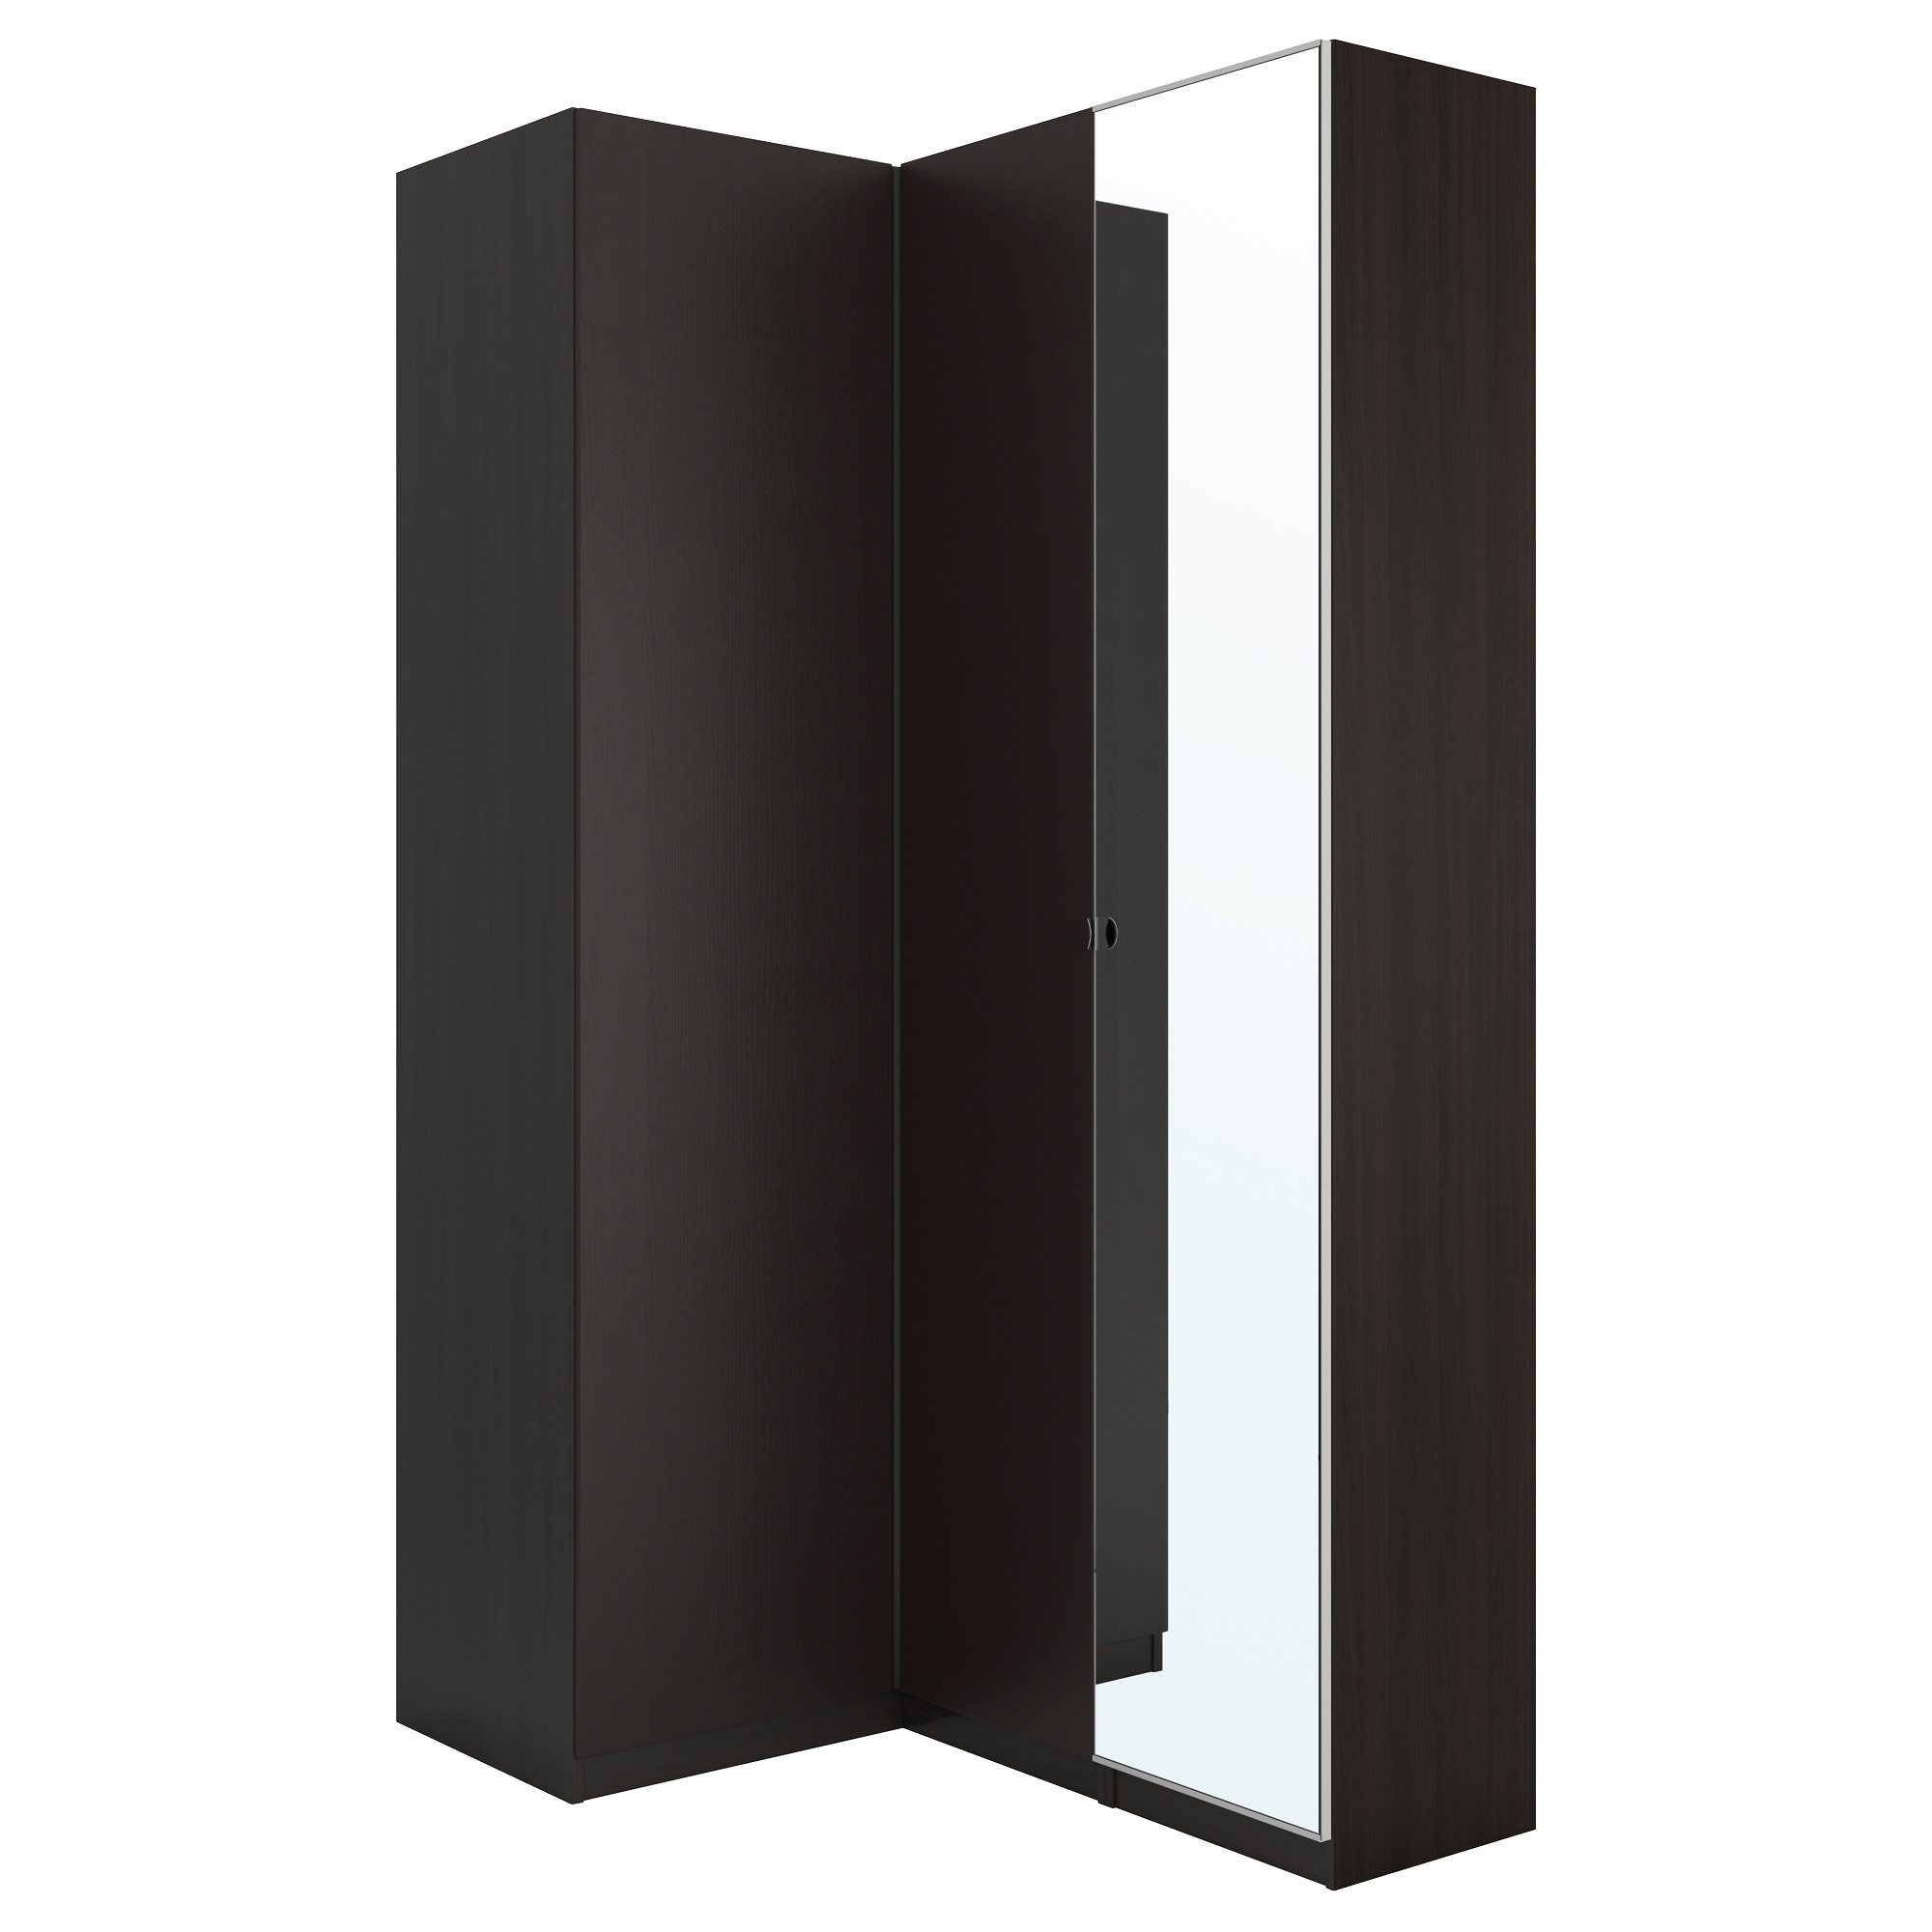 Pax Corner Wardrobe Black Brown/nexus Vikedal 160/88X236 Cm – Ikea Pertaining To Favorite Black Corner Wardrobes (View 14 of 15)